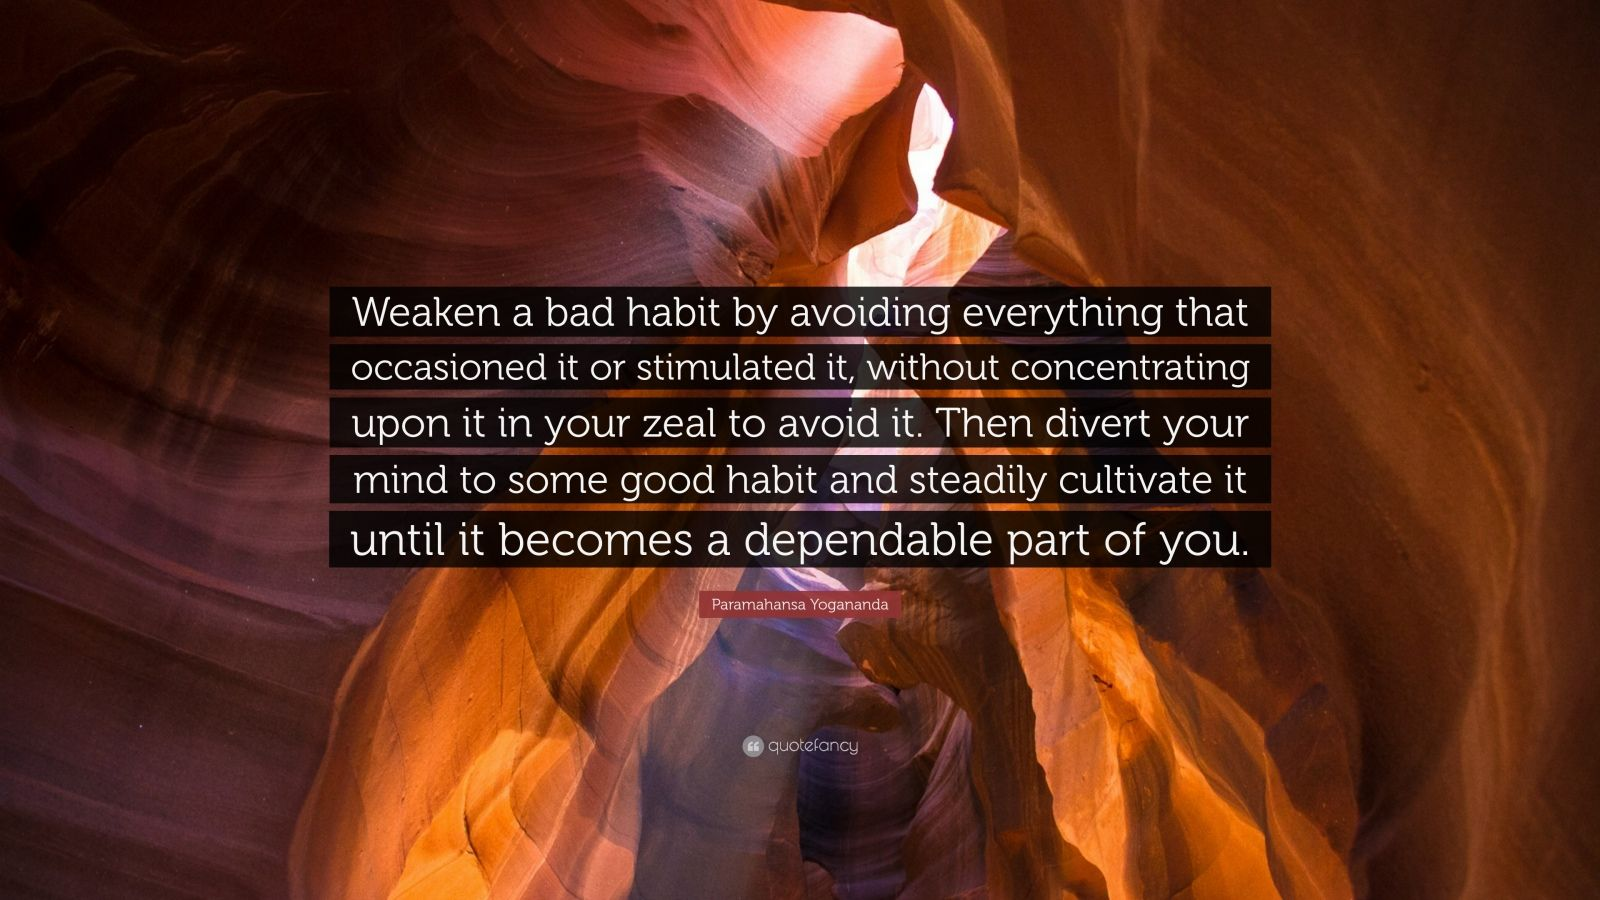 "Paramahansa Yogananda Quote: ""Weaken a bad habit by avoiding everything that occasioned it or stimulated it, without concentrating upon it in your zeal to avoid it. Then divert your mind to some good habit and steadily cultivate it until it becomes a dependable part of you."""